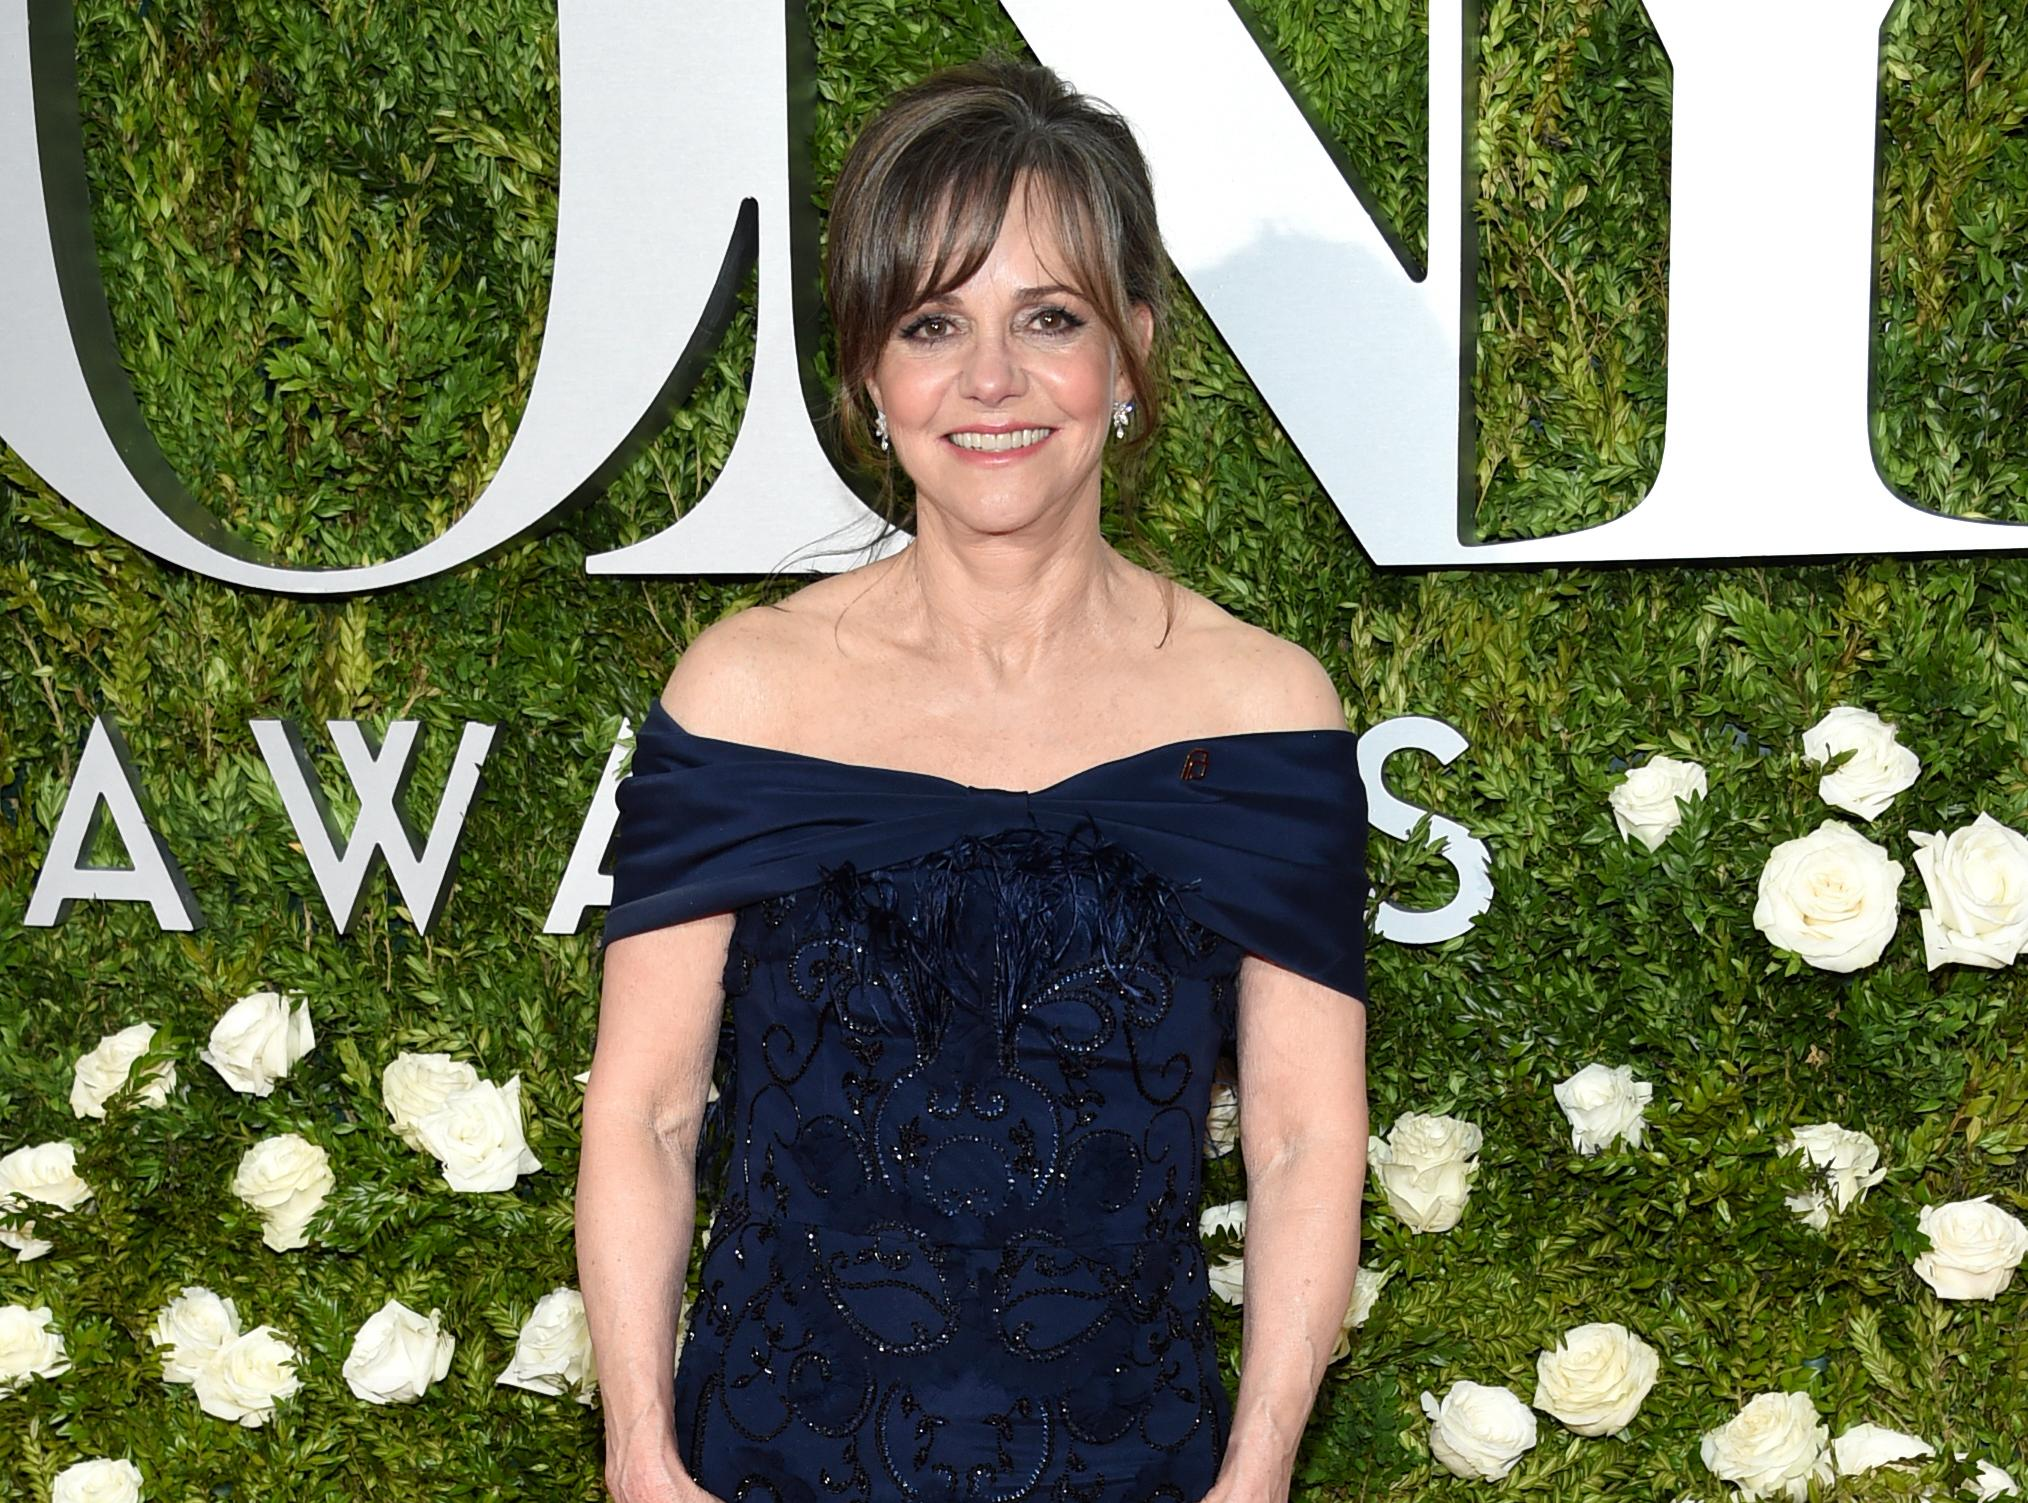 Sally Field arrives at the 71st annual Tony Awards at Radio City Music Hall on Sunday, June 11, 2017, in New York. (Photo by Evan Agostini/Invision/AP)